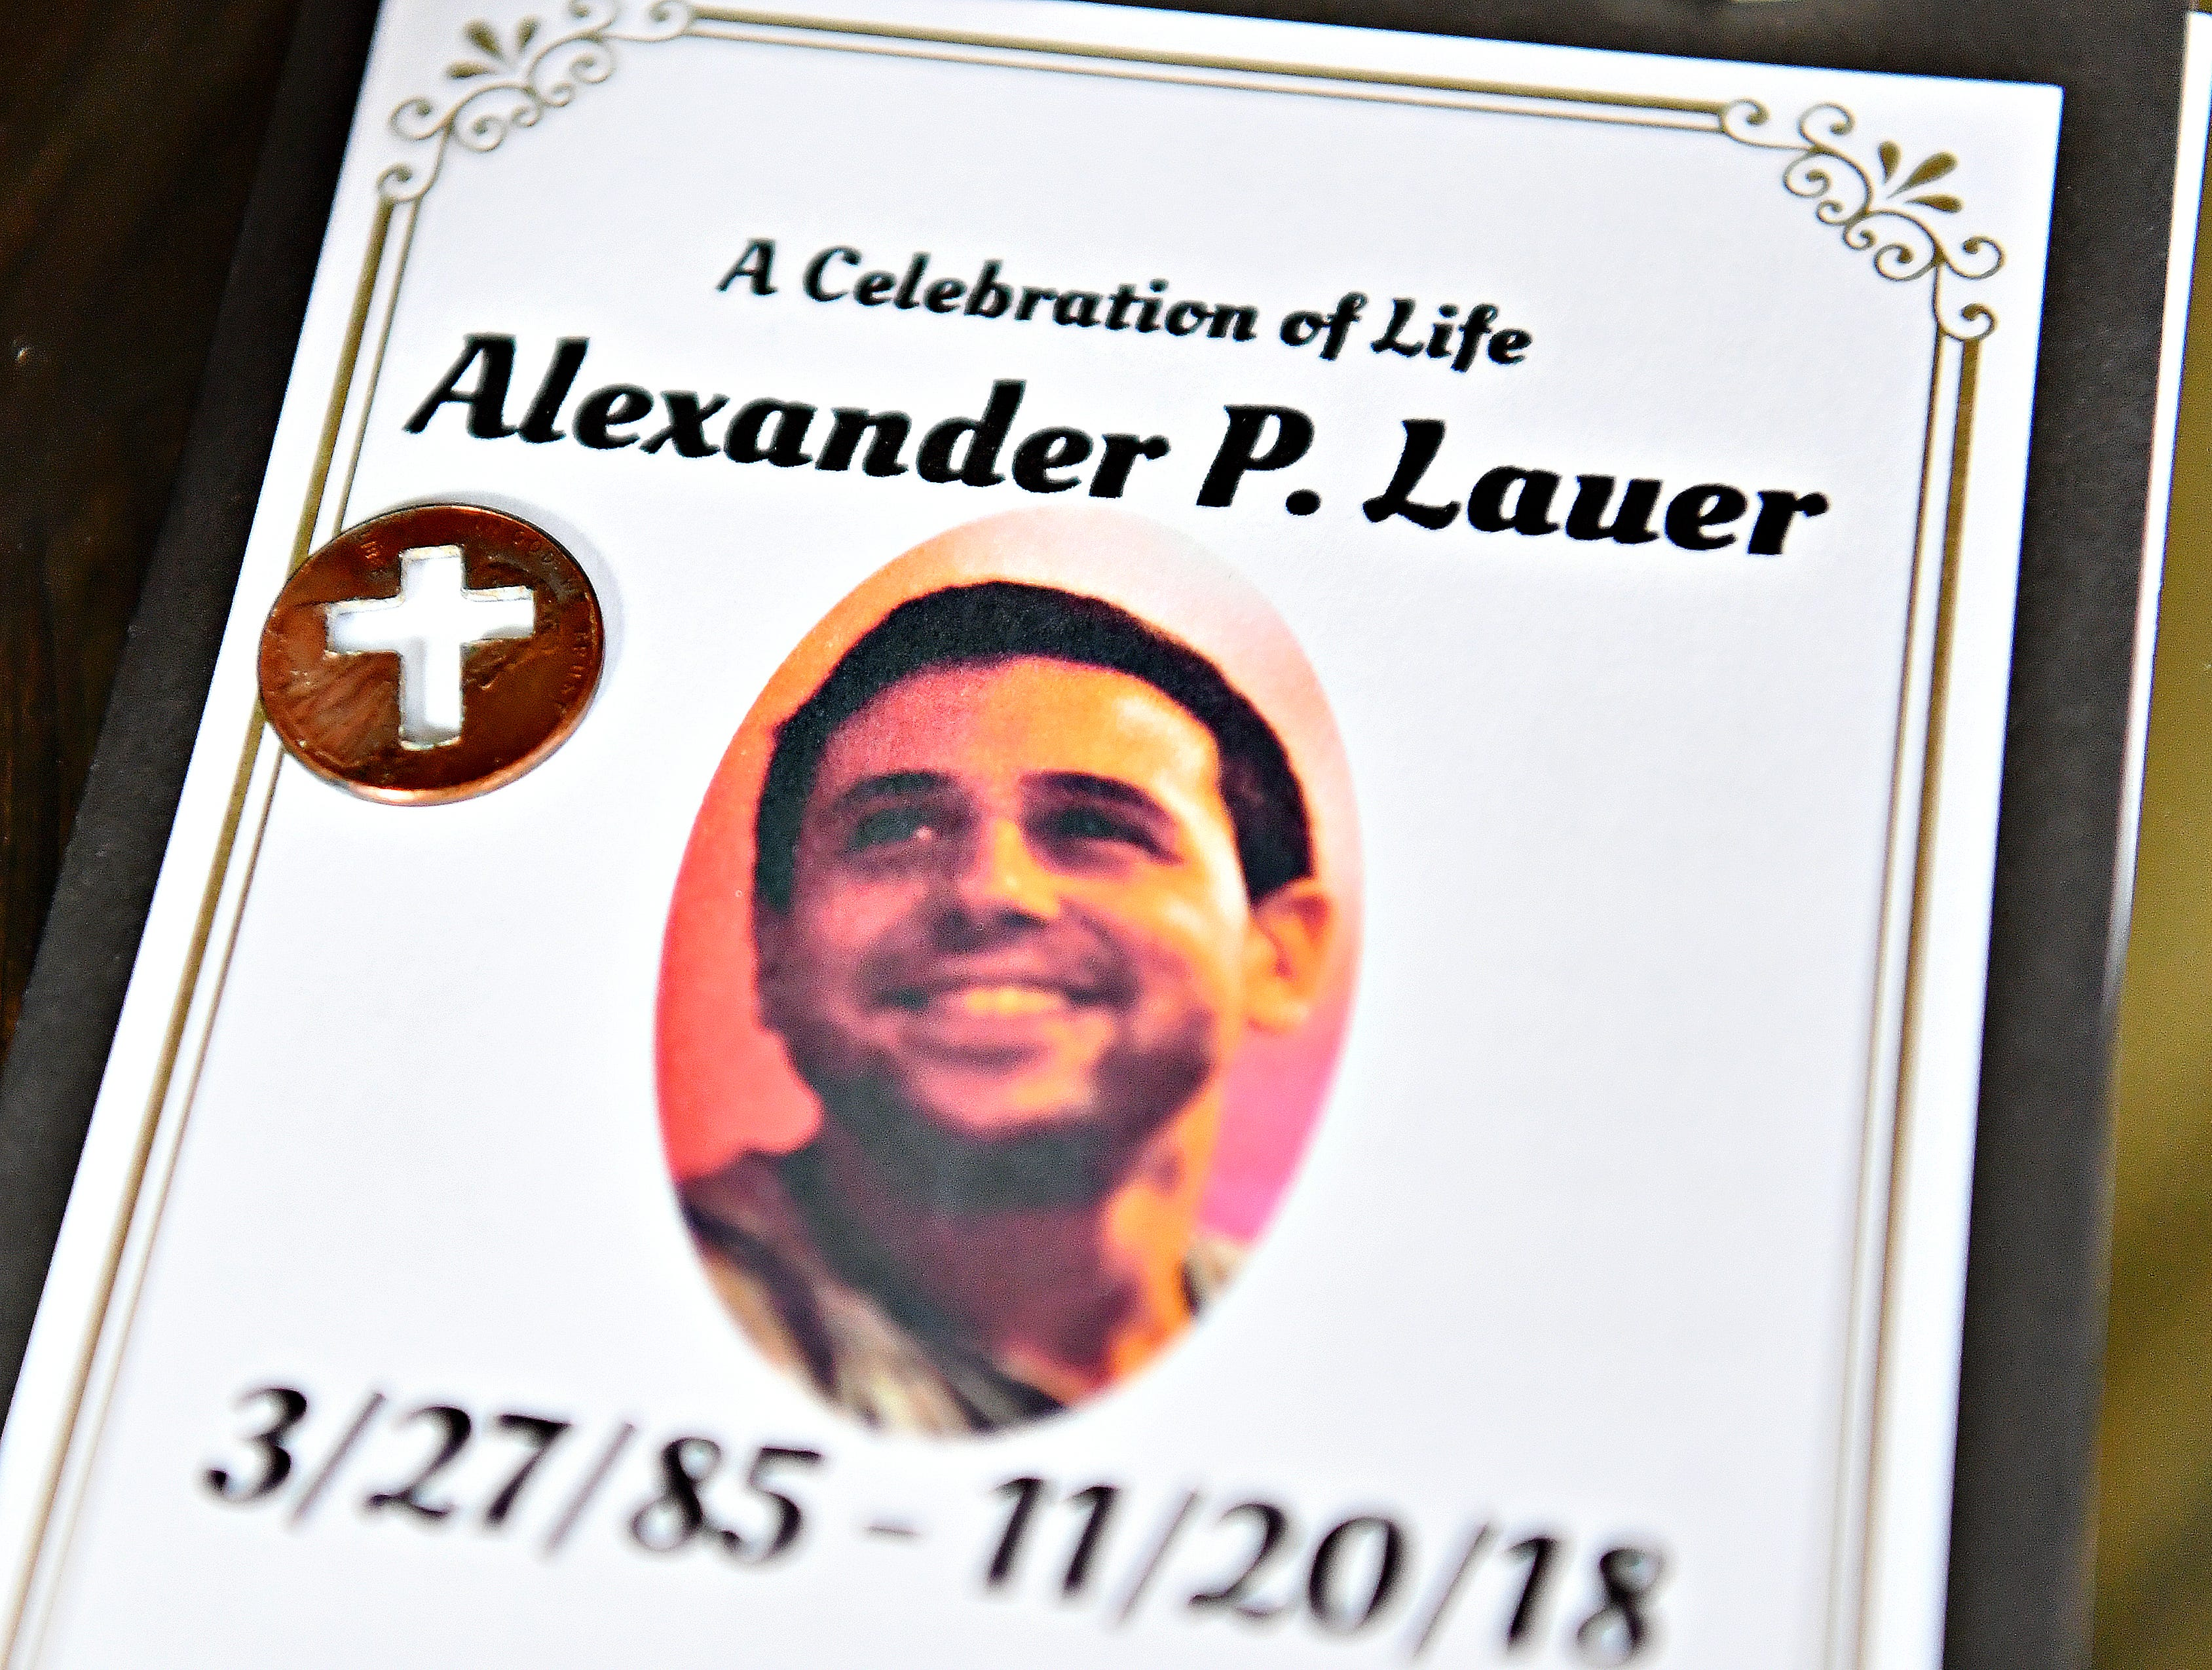 The program for the Celebration of Life held in memory of Alexander P. Lauer rests among photo albums, journals and a plethora of notes and other research materials span the kitchen table at the Lauer home in York Township, Tuesday, Dec. 4, 2018. The materials belonged to Alexander Lauer, 33, who lost his decade-long battle with heroin unexpectedly on Nov. 20., just one week after being released from York Hospital for drug treatment. Dawn J. Sagert photo